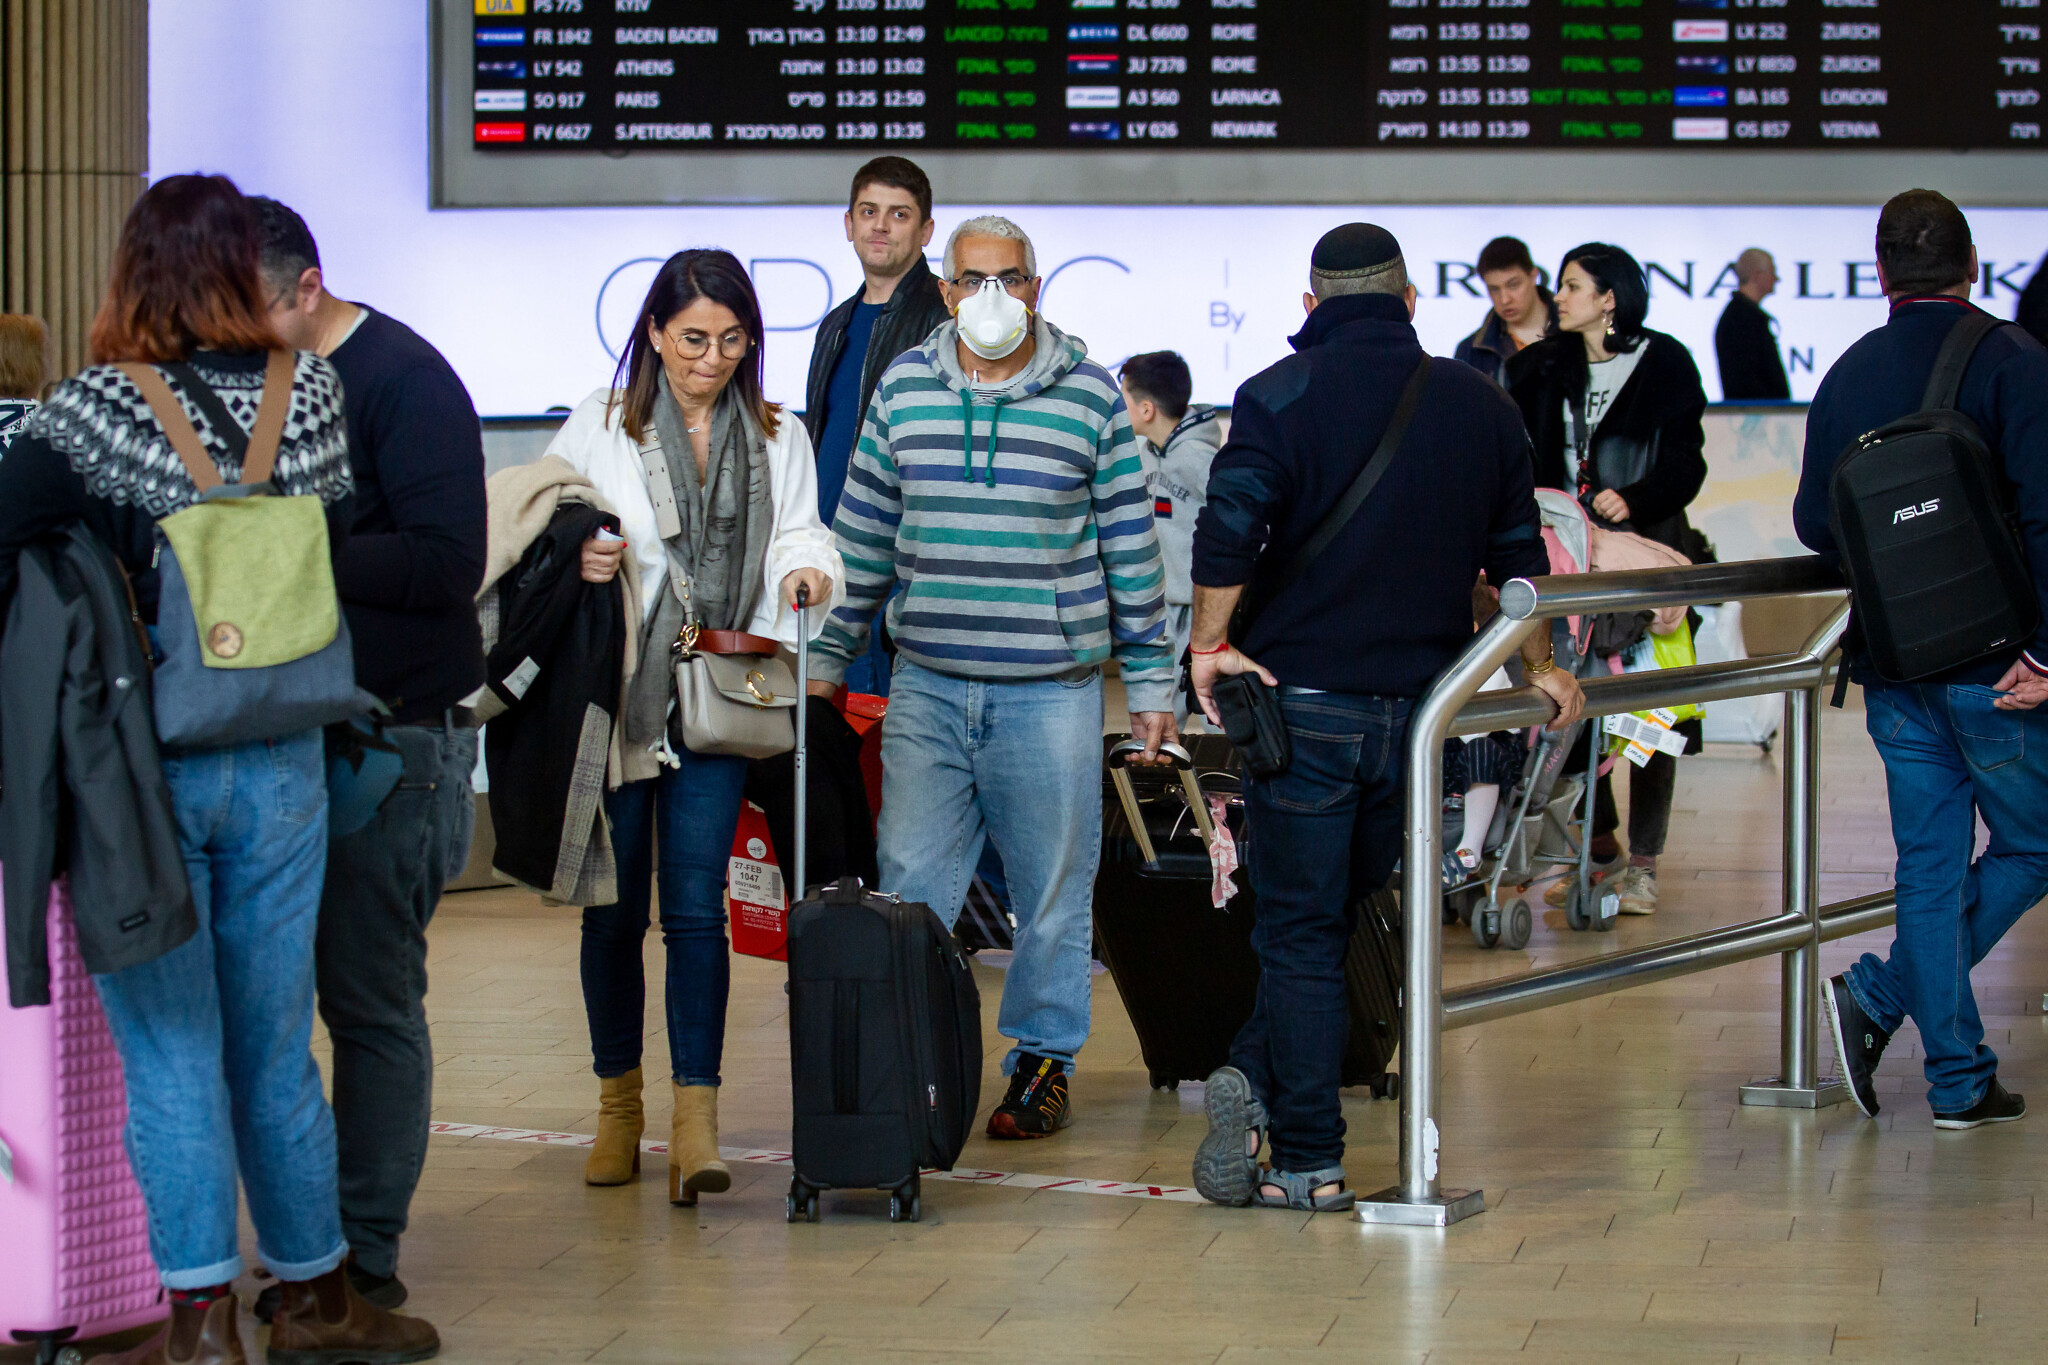 Israel reportedly decides on self-quarantine for arrivals from NY ...